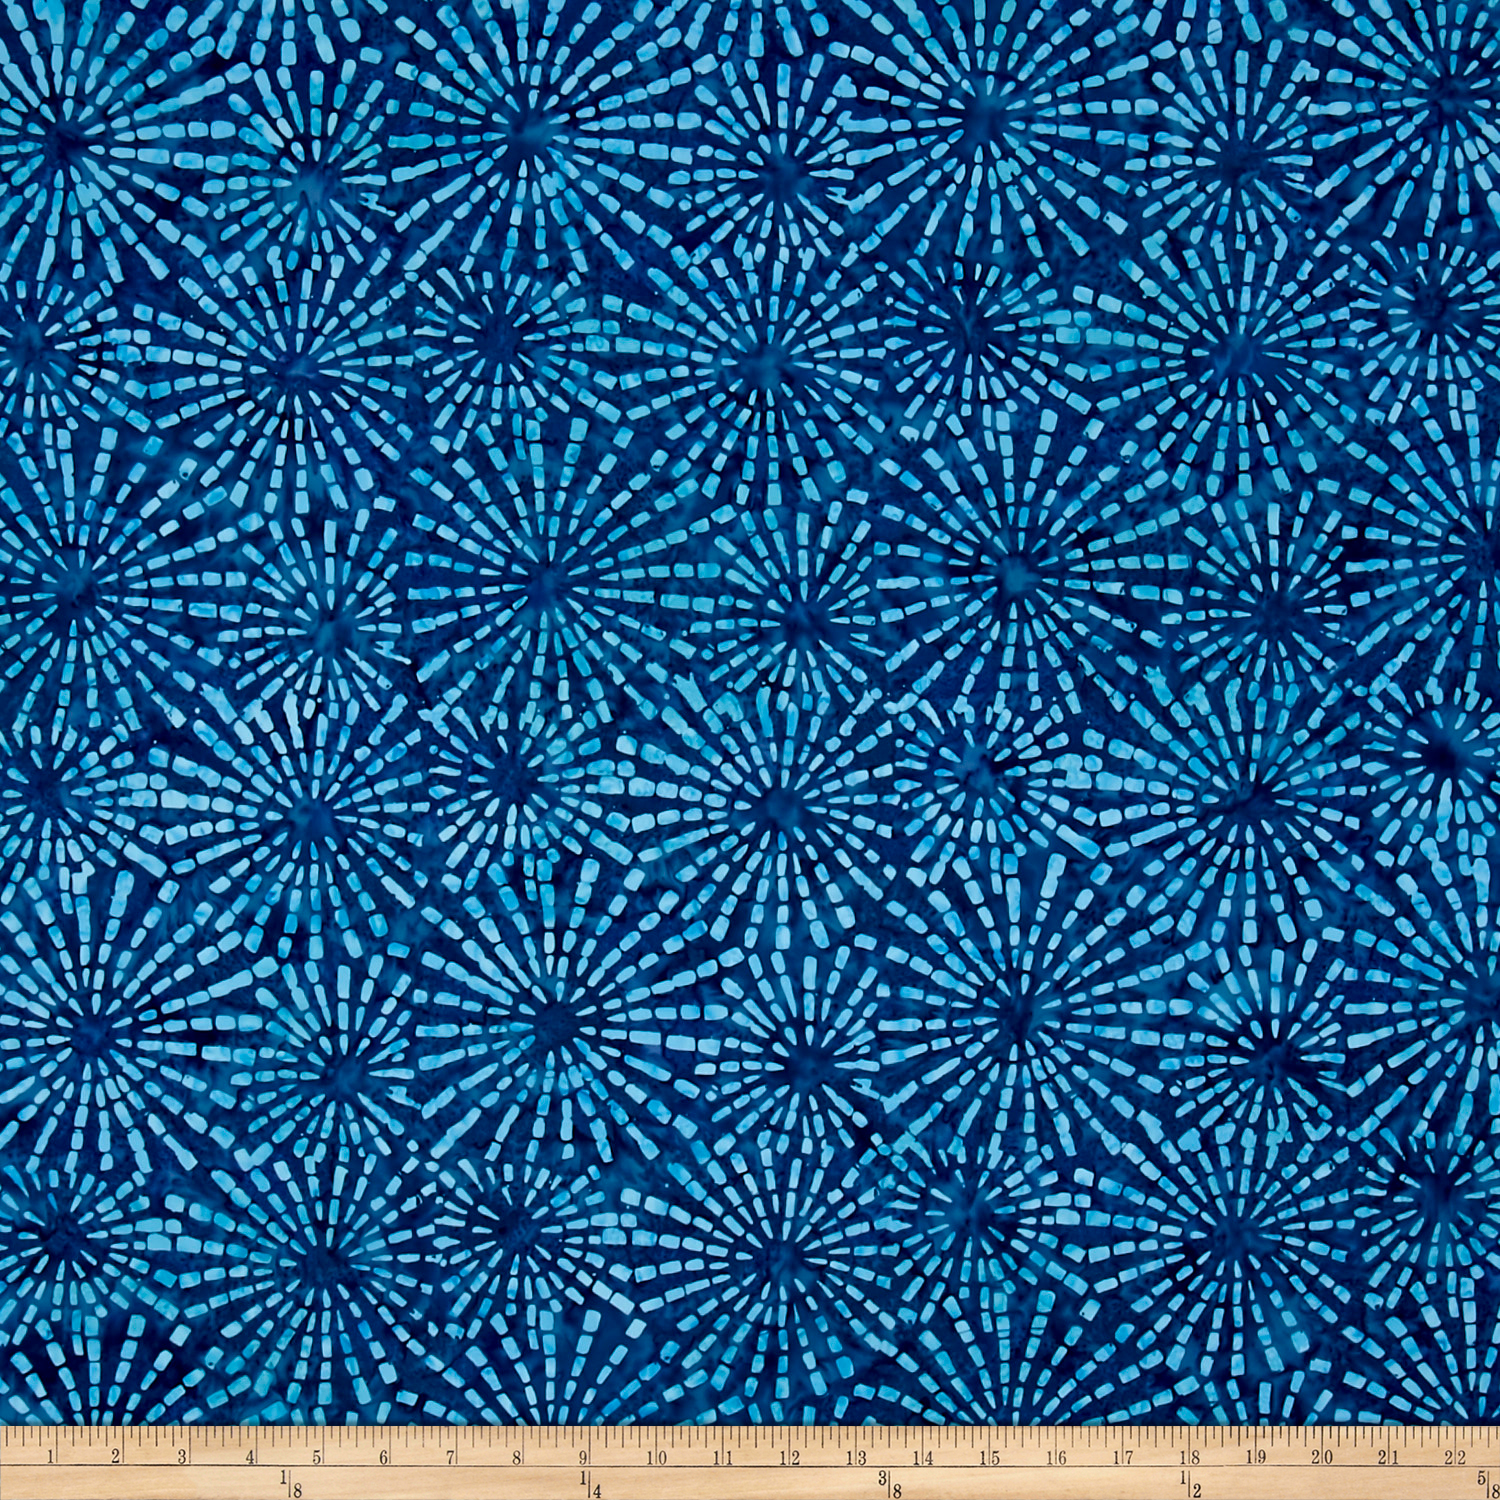 Benartex Balis Batik Sundrenched Ray of Light Blue Fabric 0470735